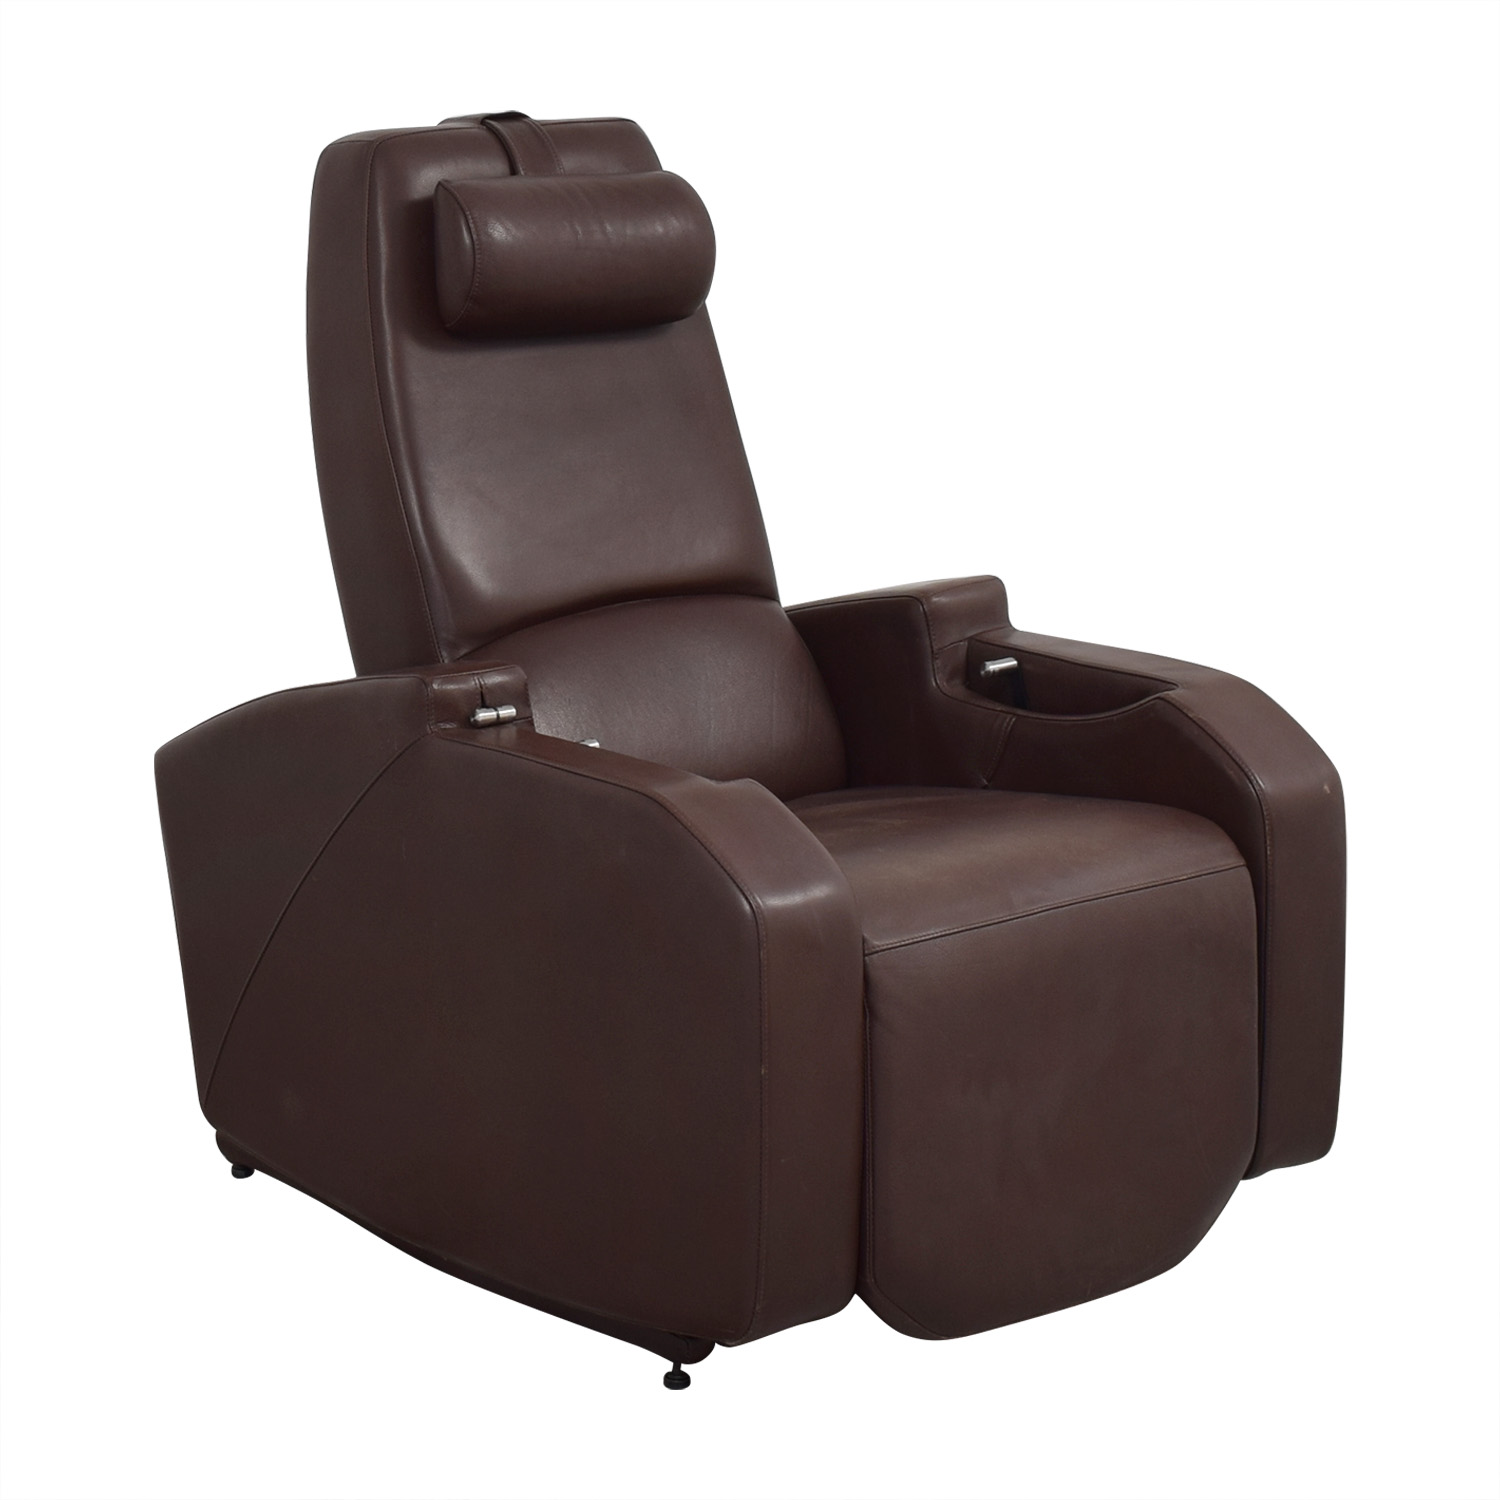 buy Relax the Back Zero Gravity Leather Rocking Recliner Relax The Back Chairs